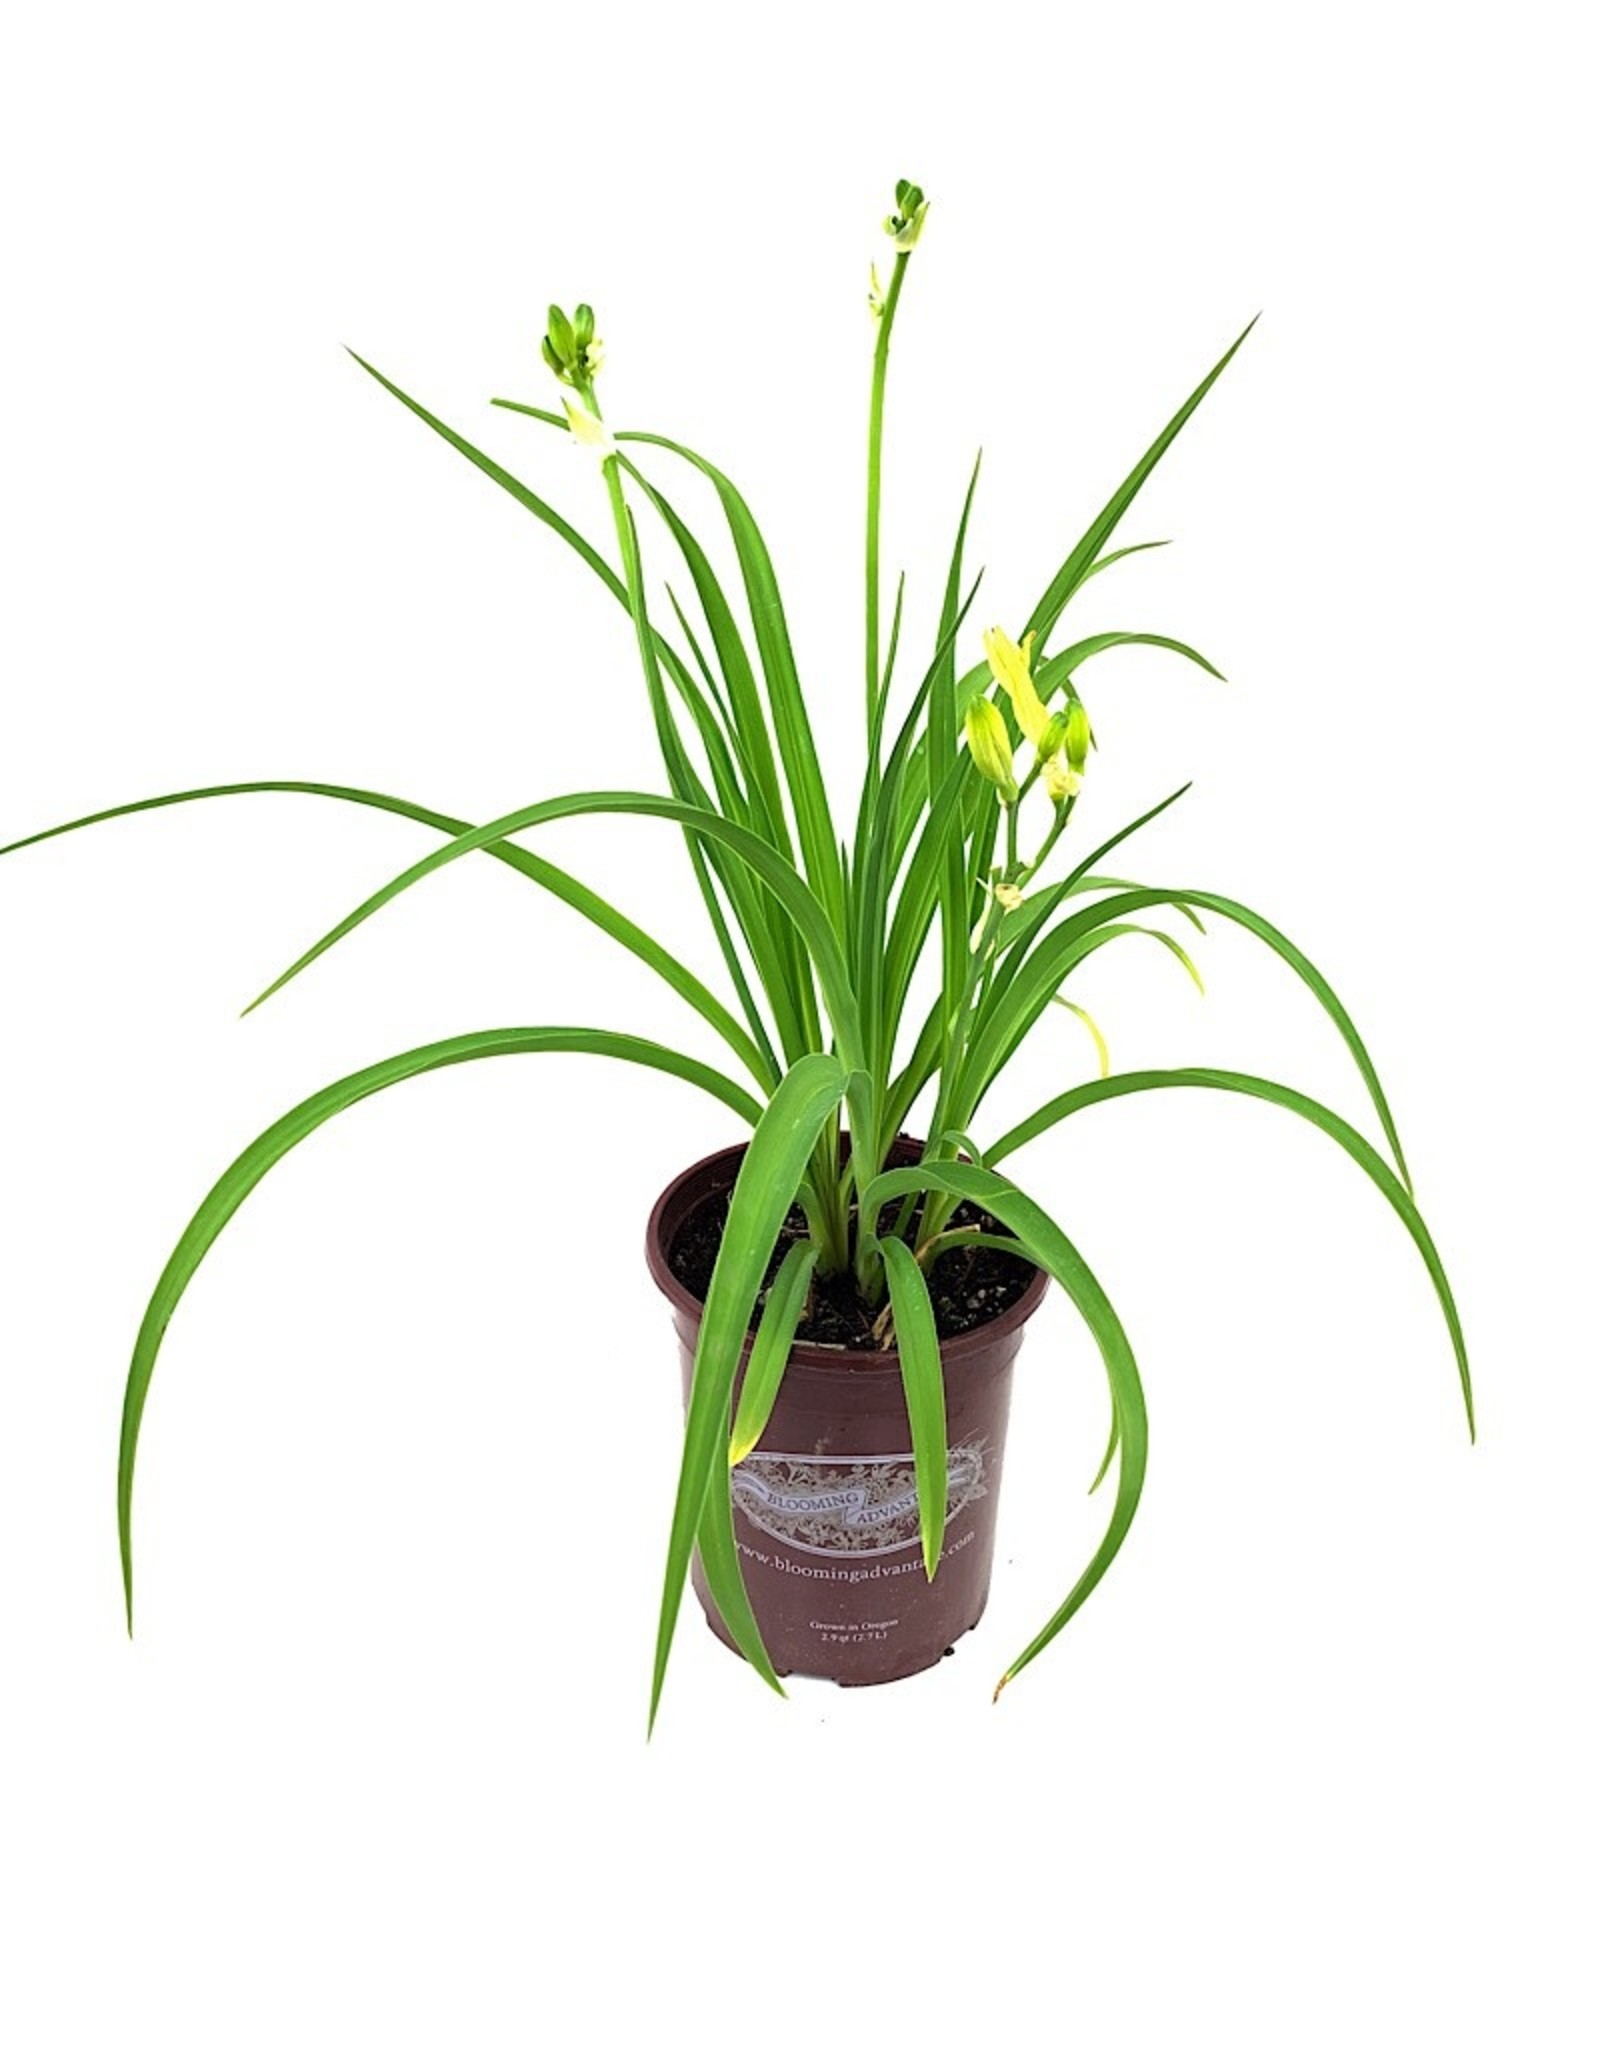 Hemerocallis 'Happy Returns' 1 Gallon